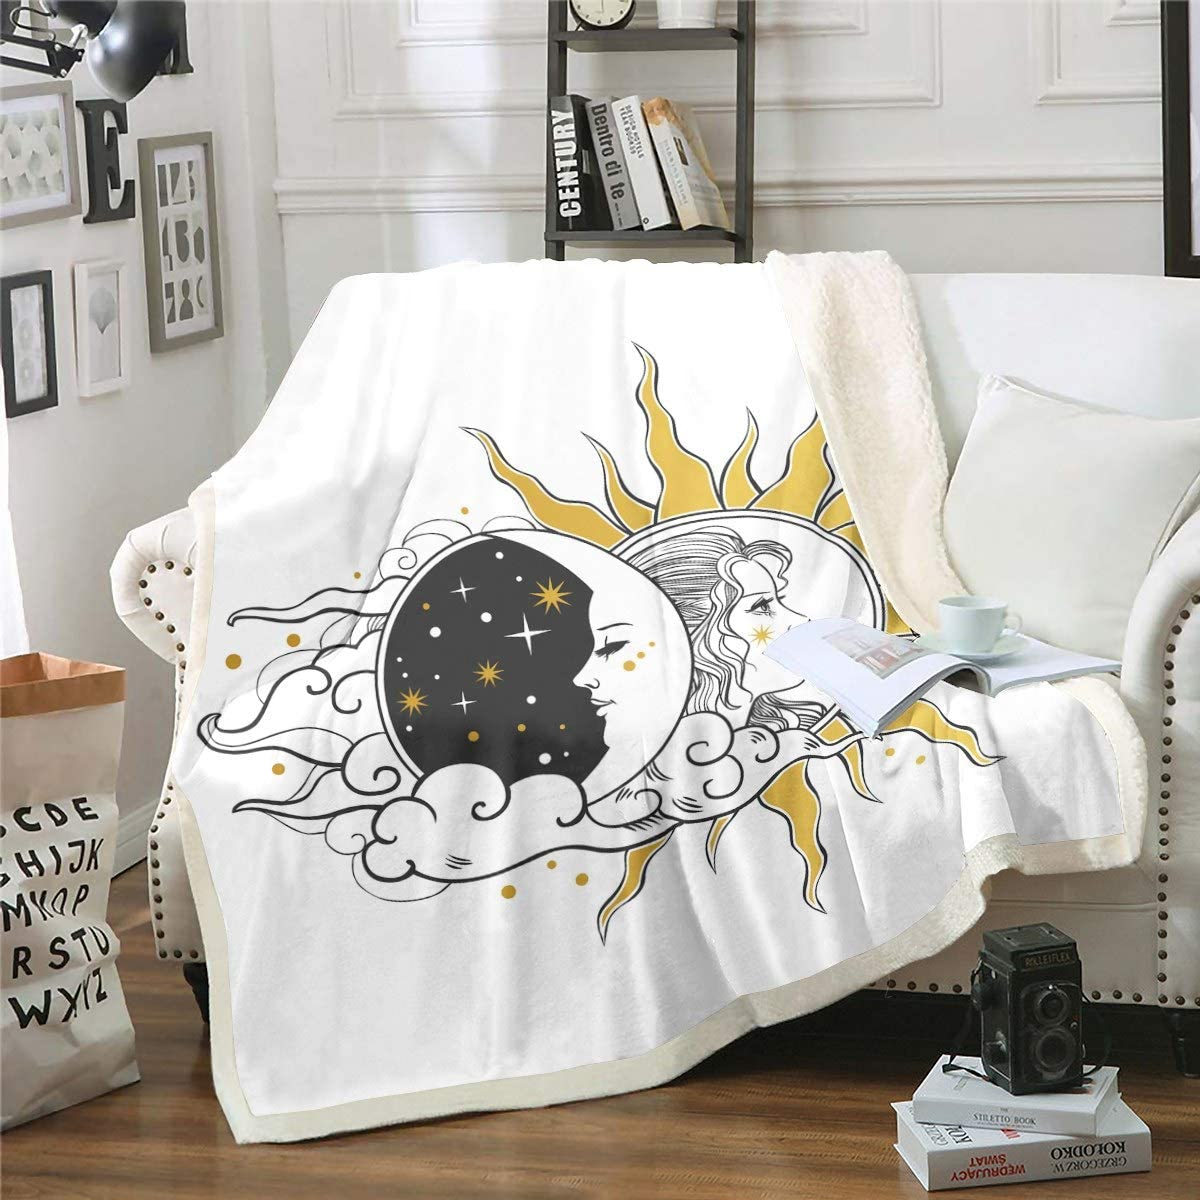 Feelyou Sun Special sale item and Moon Sherpa Blanket Boho Kids Boys Girls for Max 71% OFF Exo